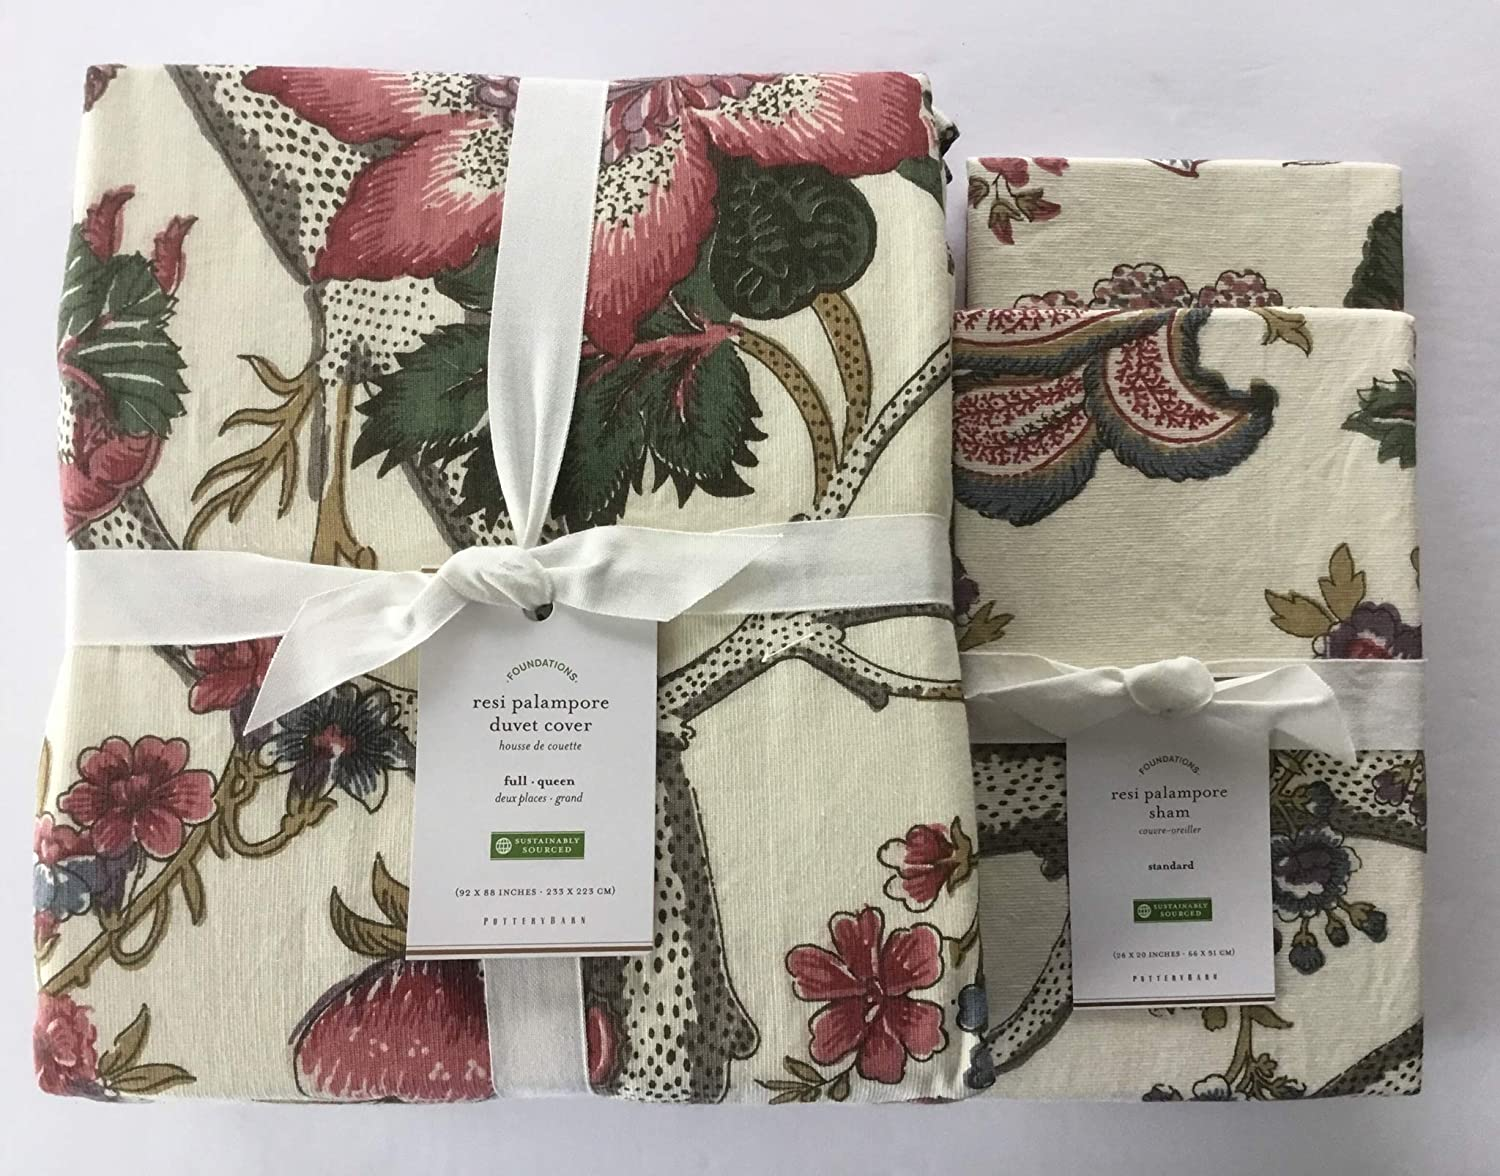 Pottery Barn Cosette Palampore floral FULL QUEEN duvet cover 2 STANDARD shams